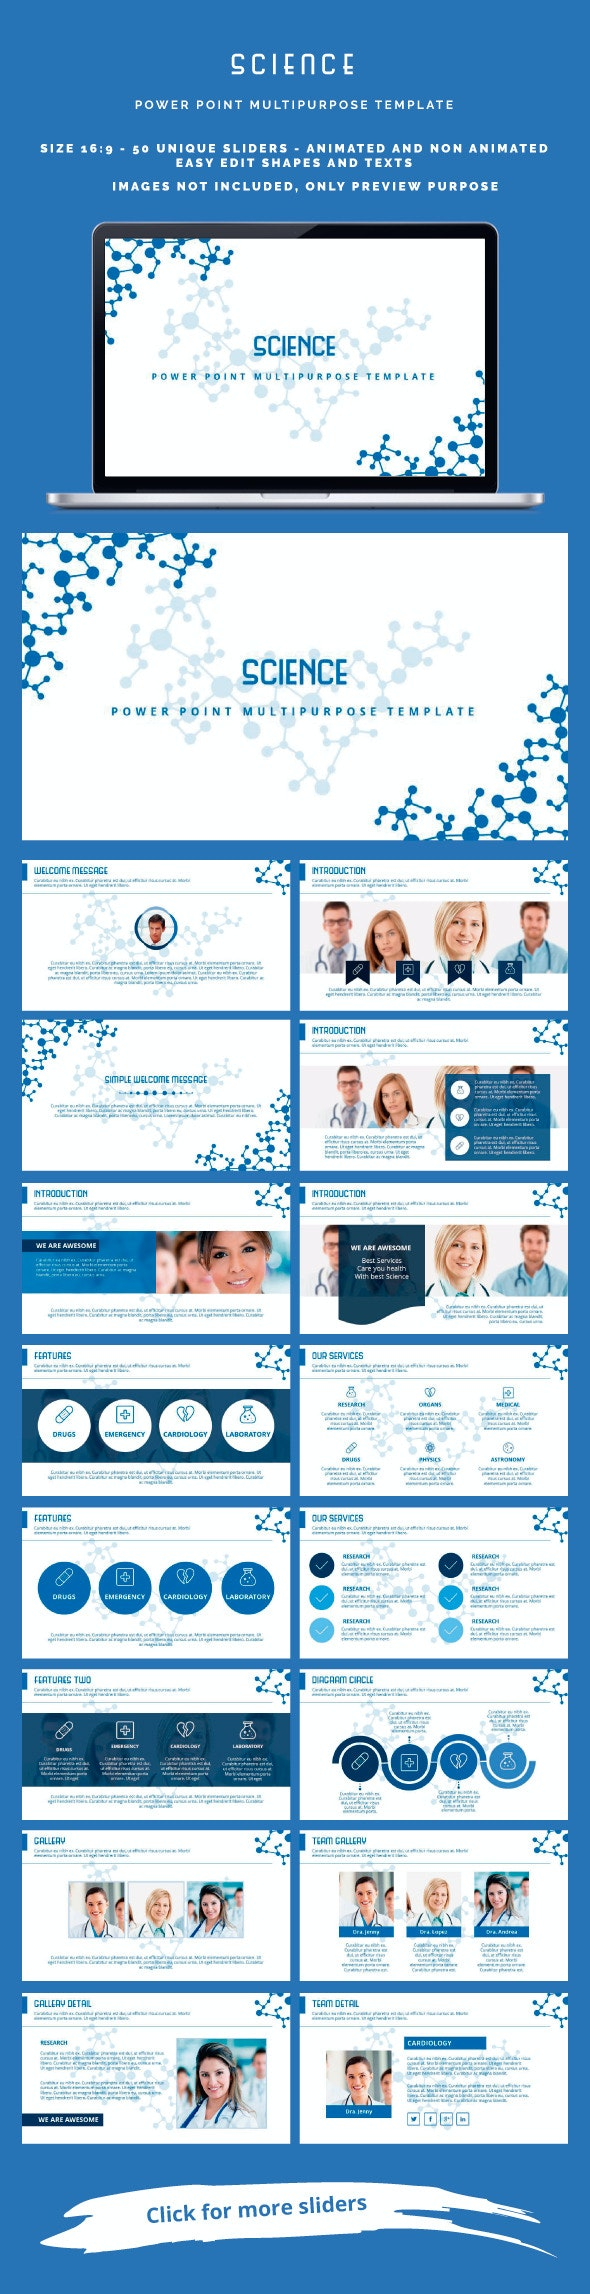 Science Power Point - Miscellaneous PowerPoint Templates